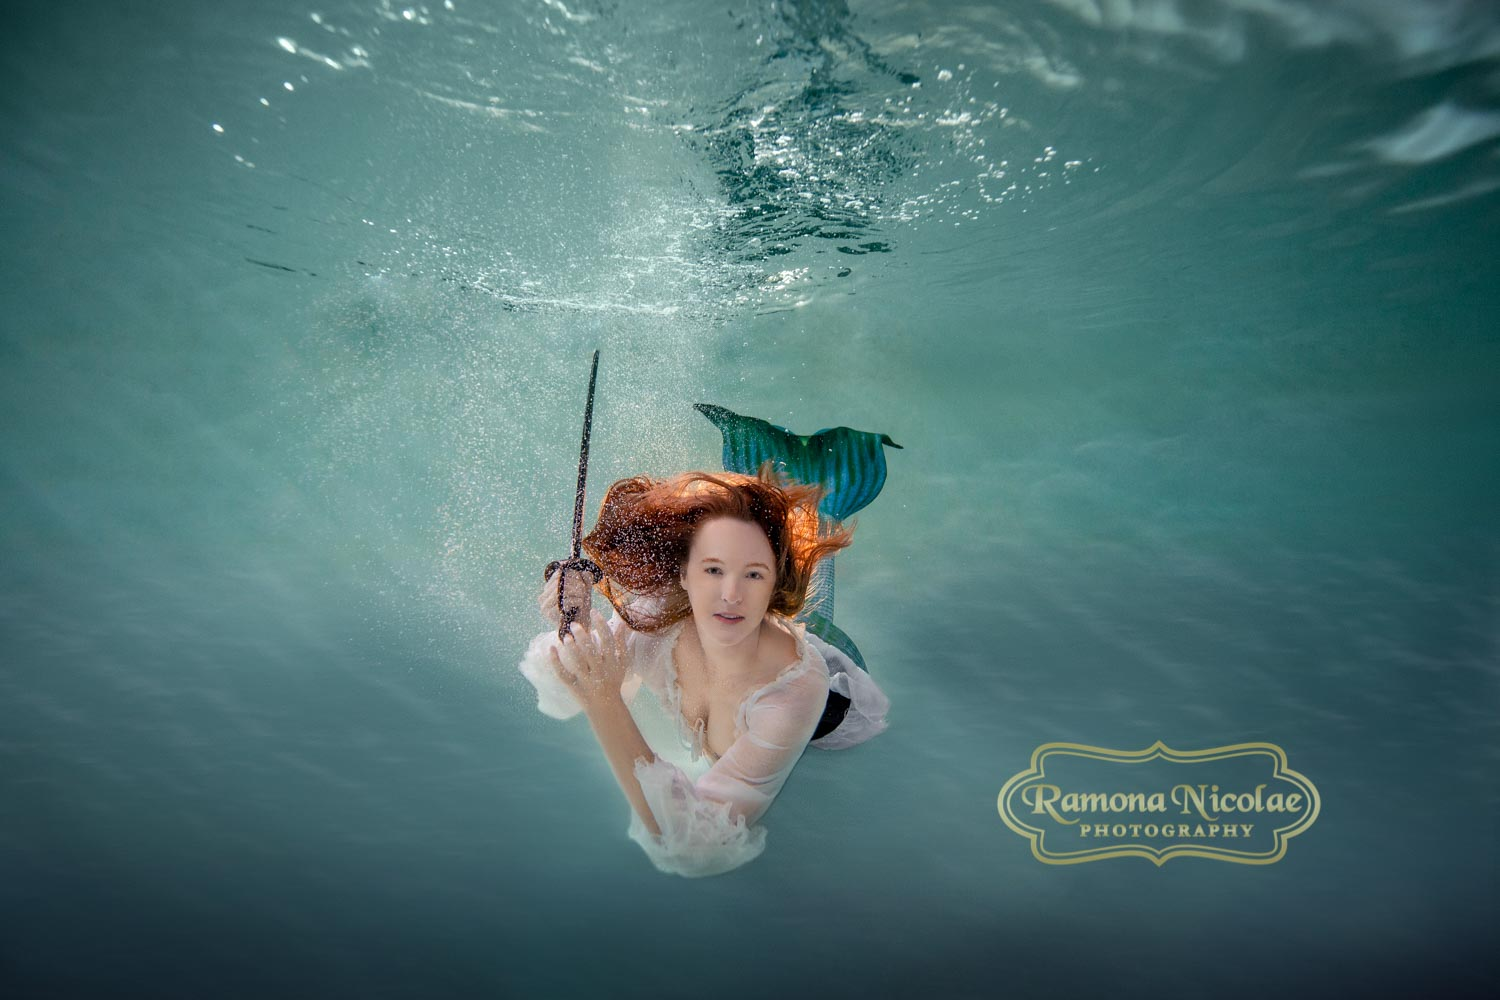 Underwater photoshoot in Myrtle Beach by Ramona Nicolae Photography